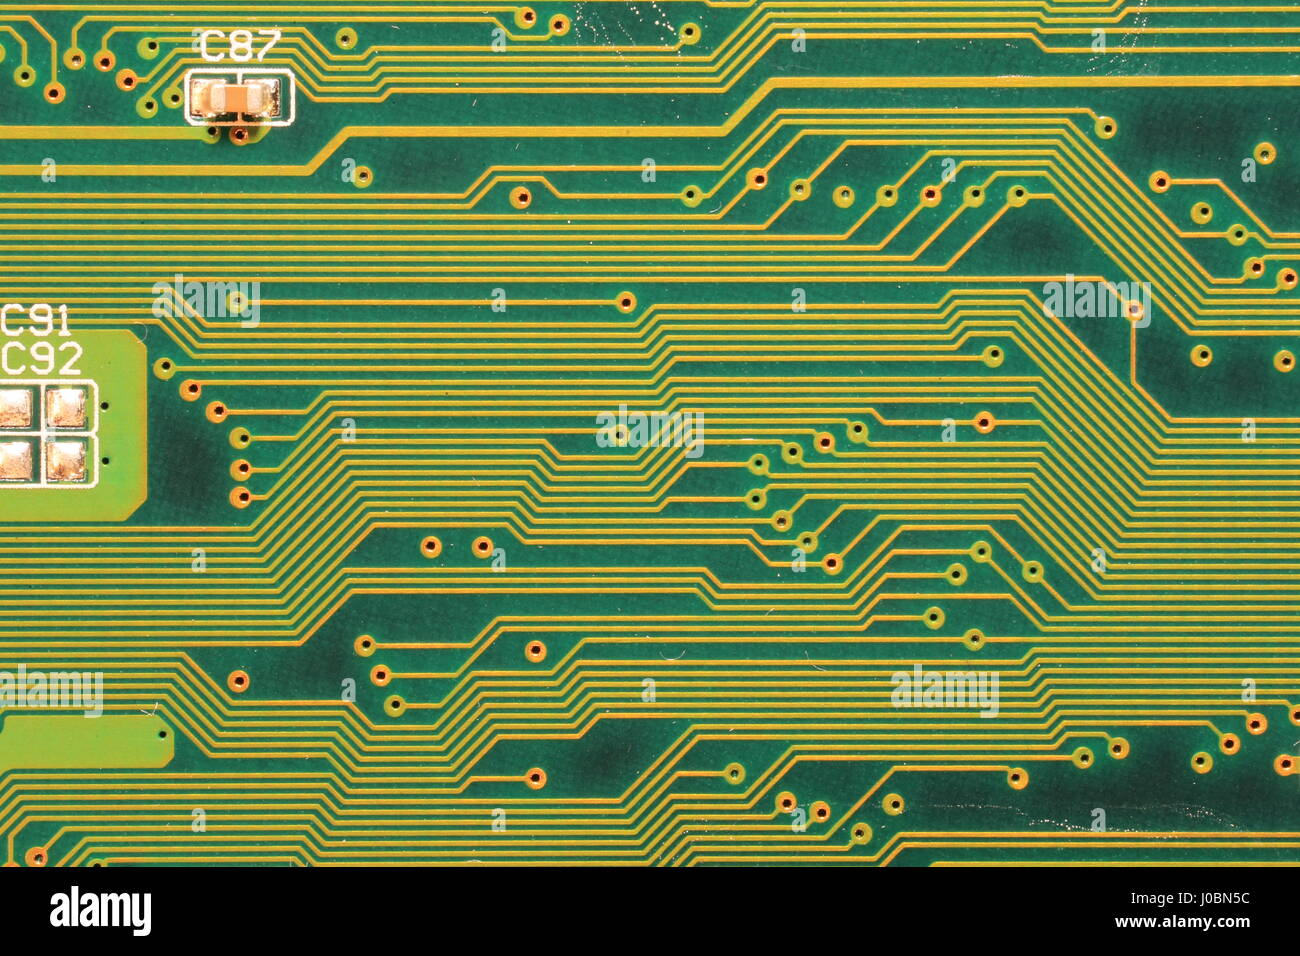 High Tech Computer de circuits imprimés (PCB) montrant Close Up Detail de circuits. Photo Stock